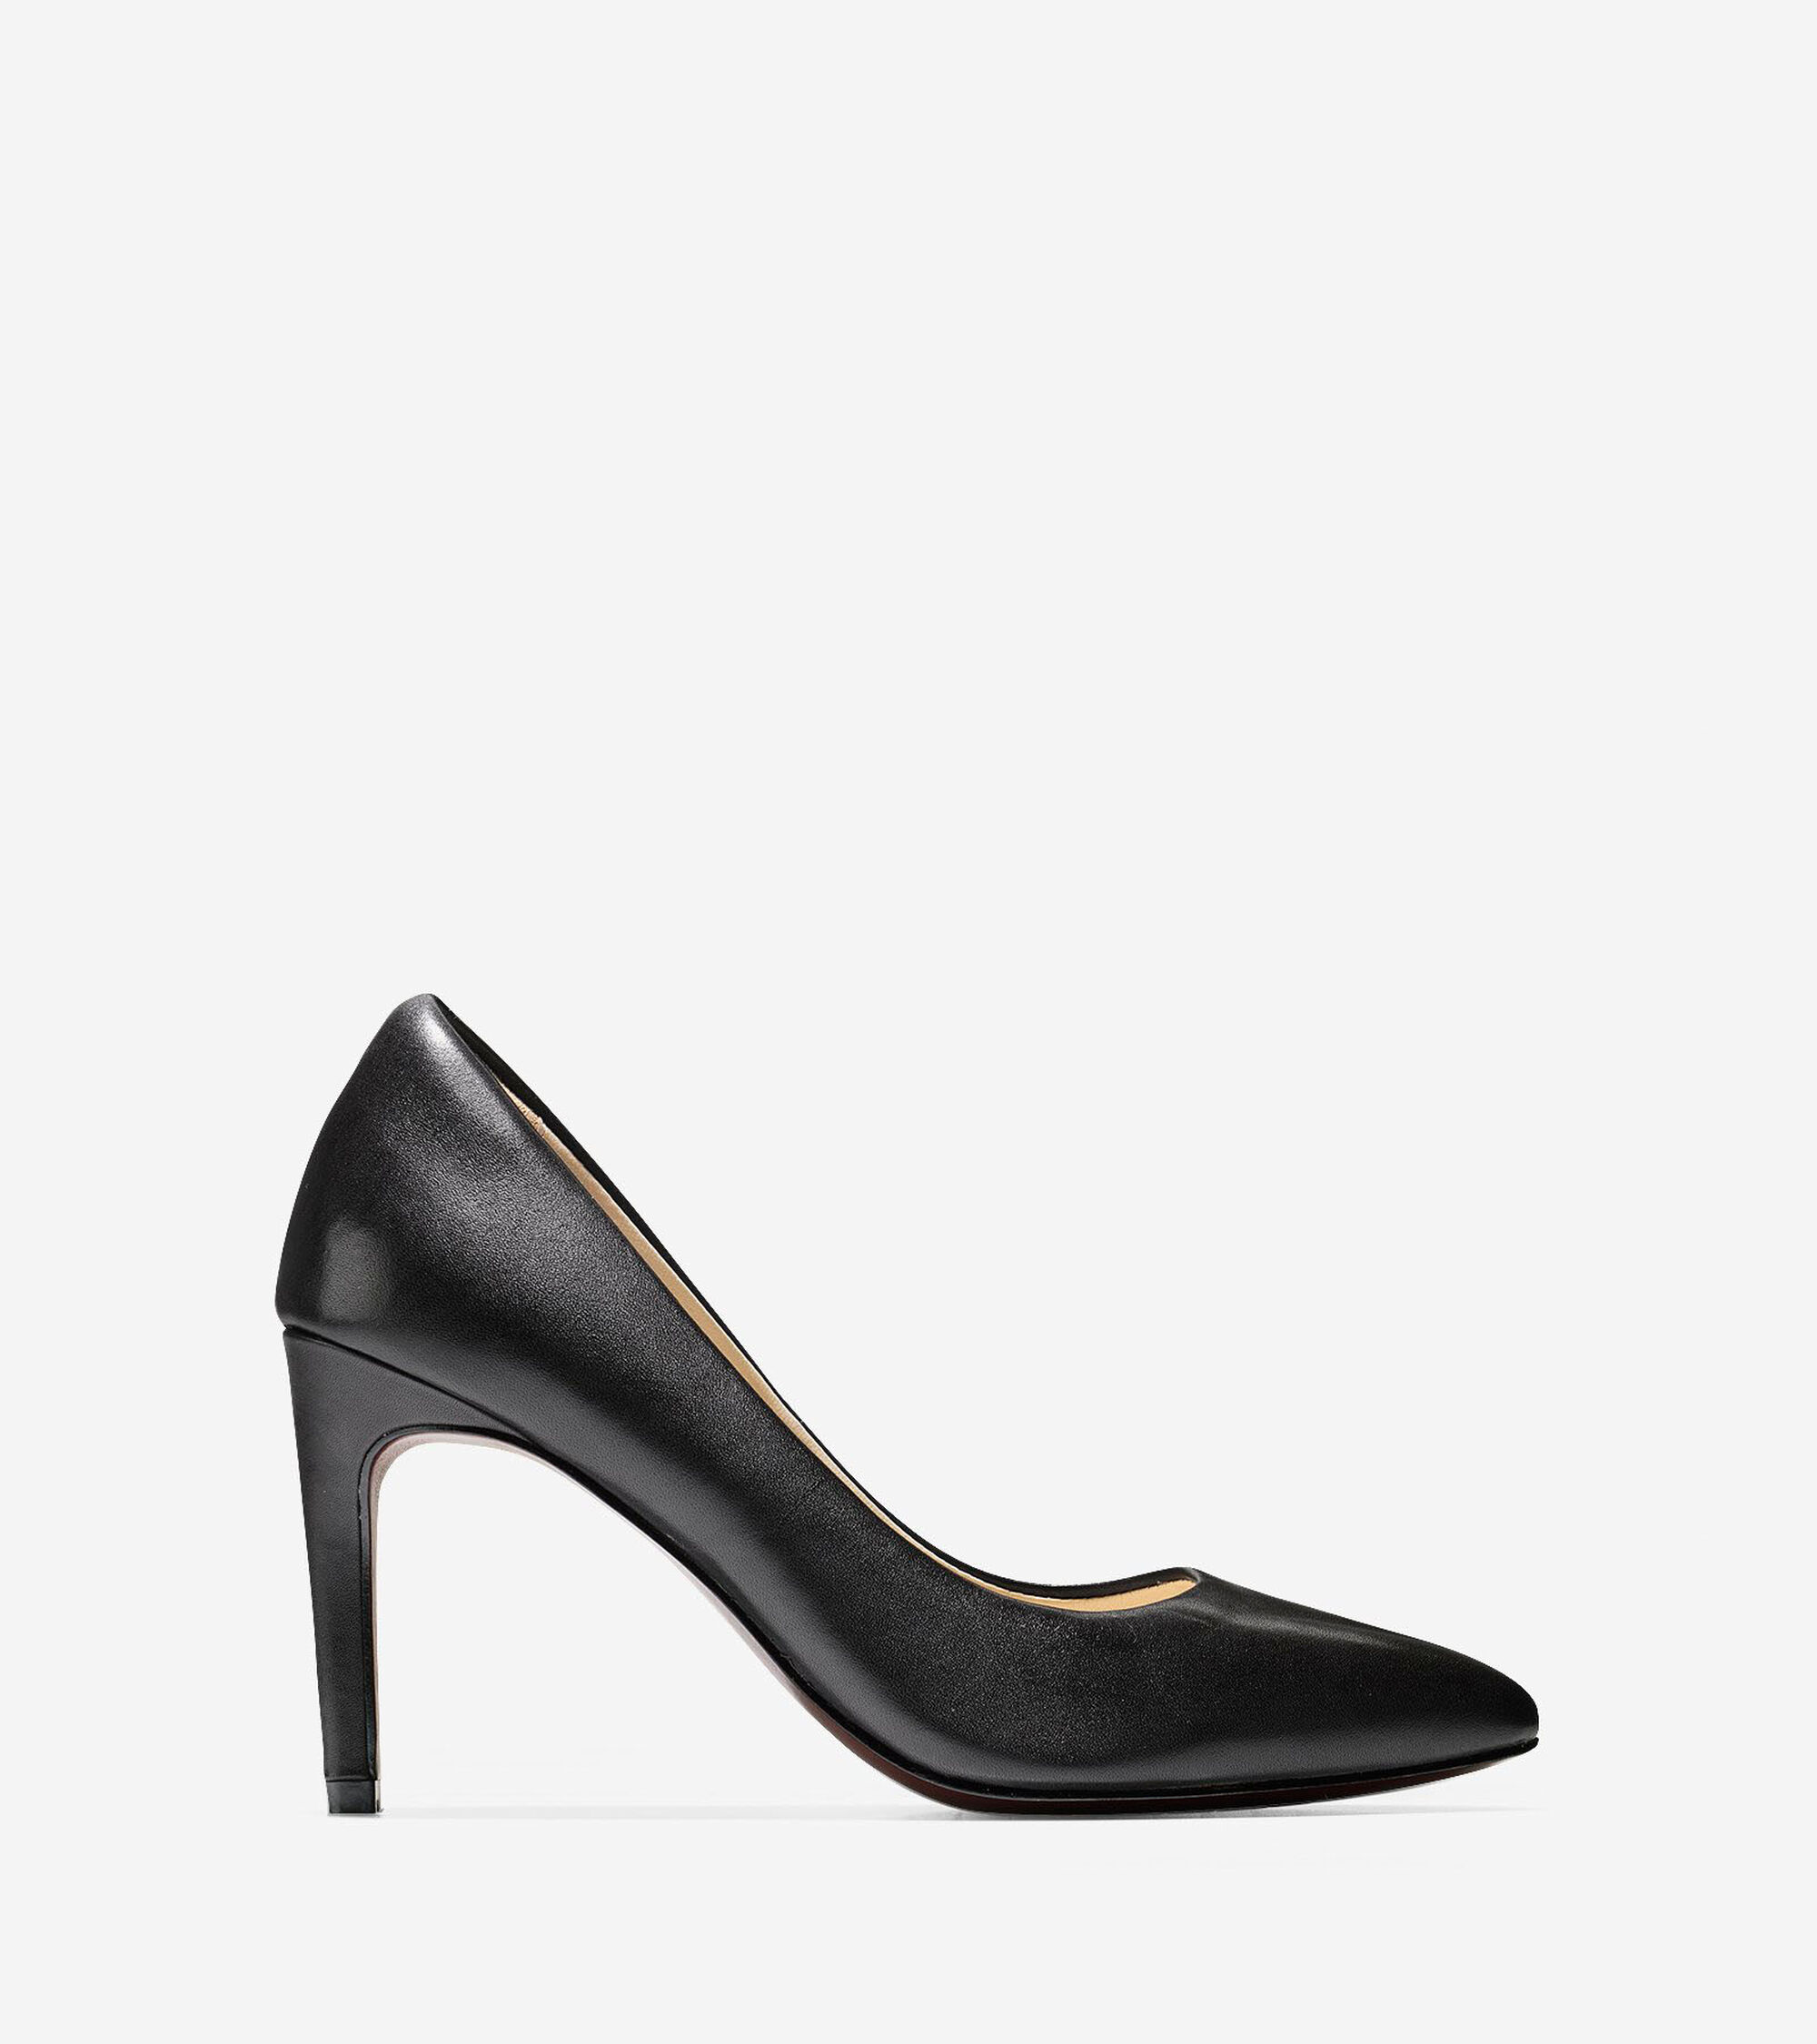 Cole haan black leather gloves - Eliza Grand Pump 85mm